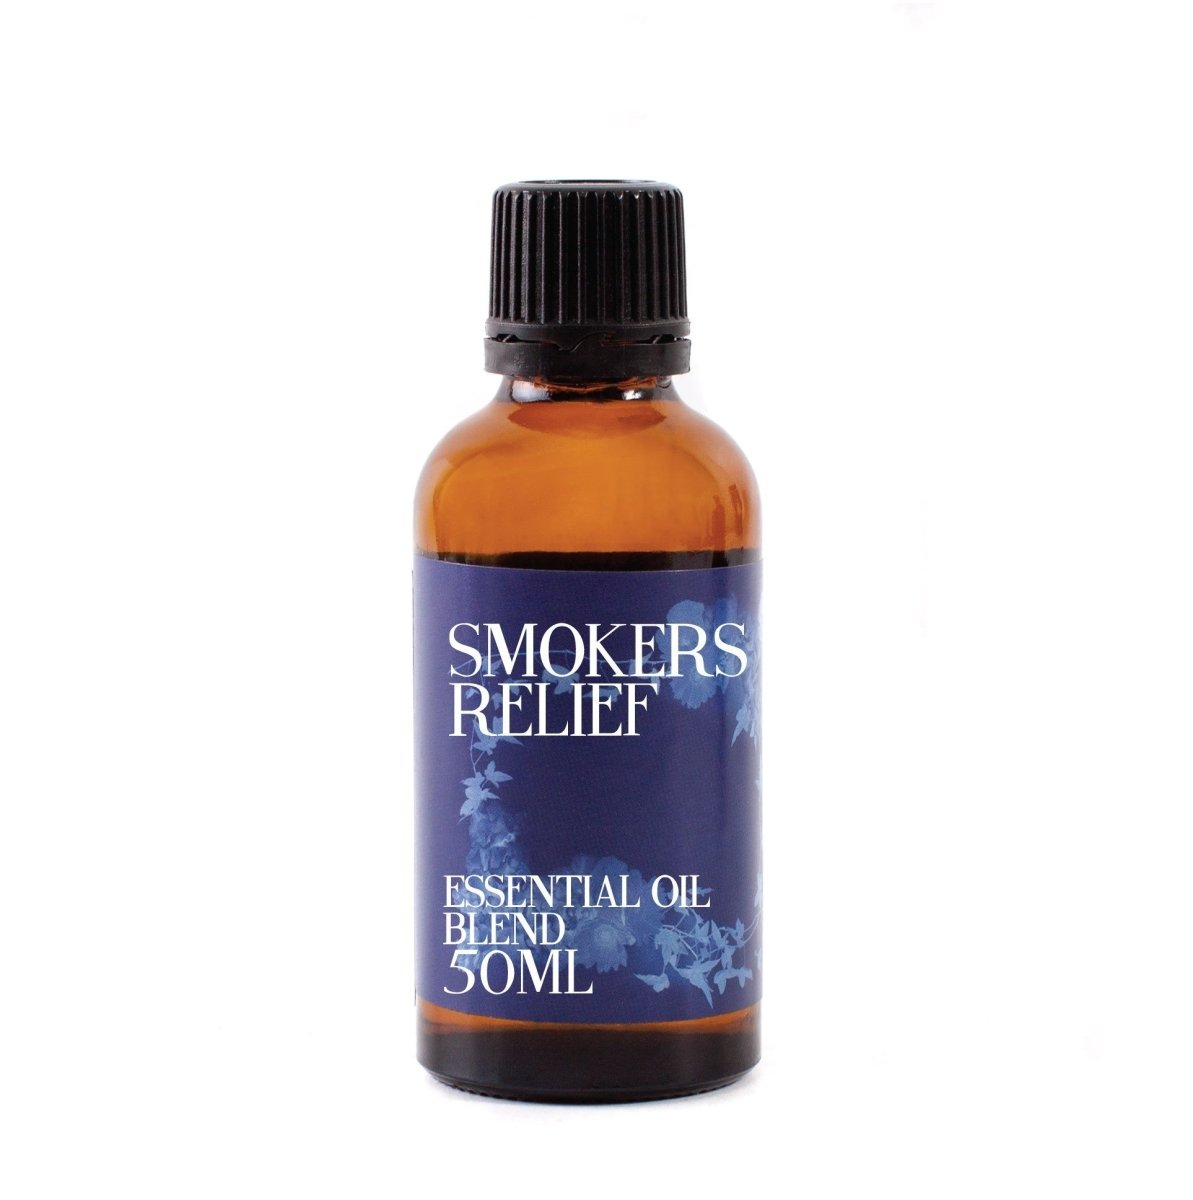 Smokers Relief - Essential Oil Blends - Mystic Moments UK